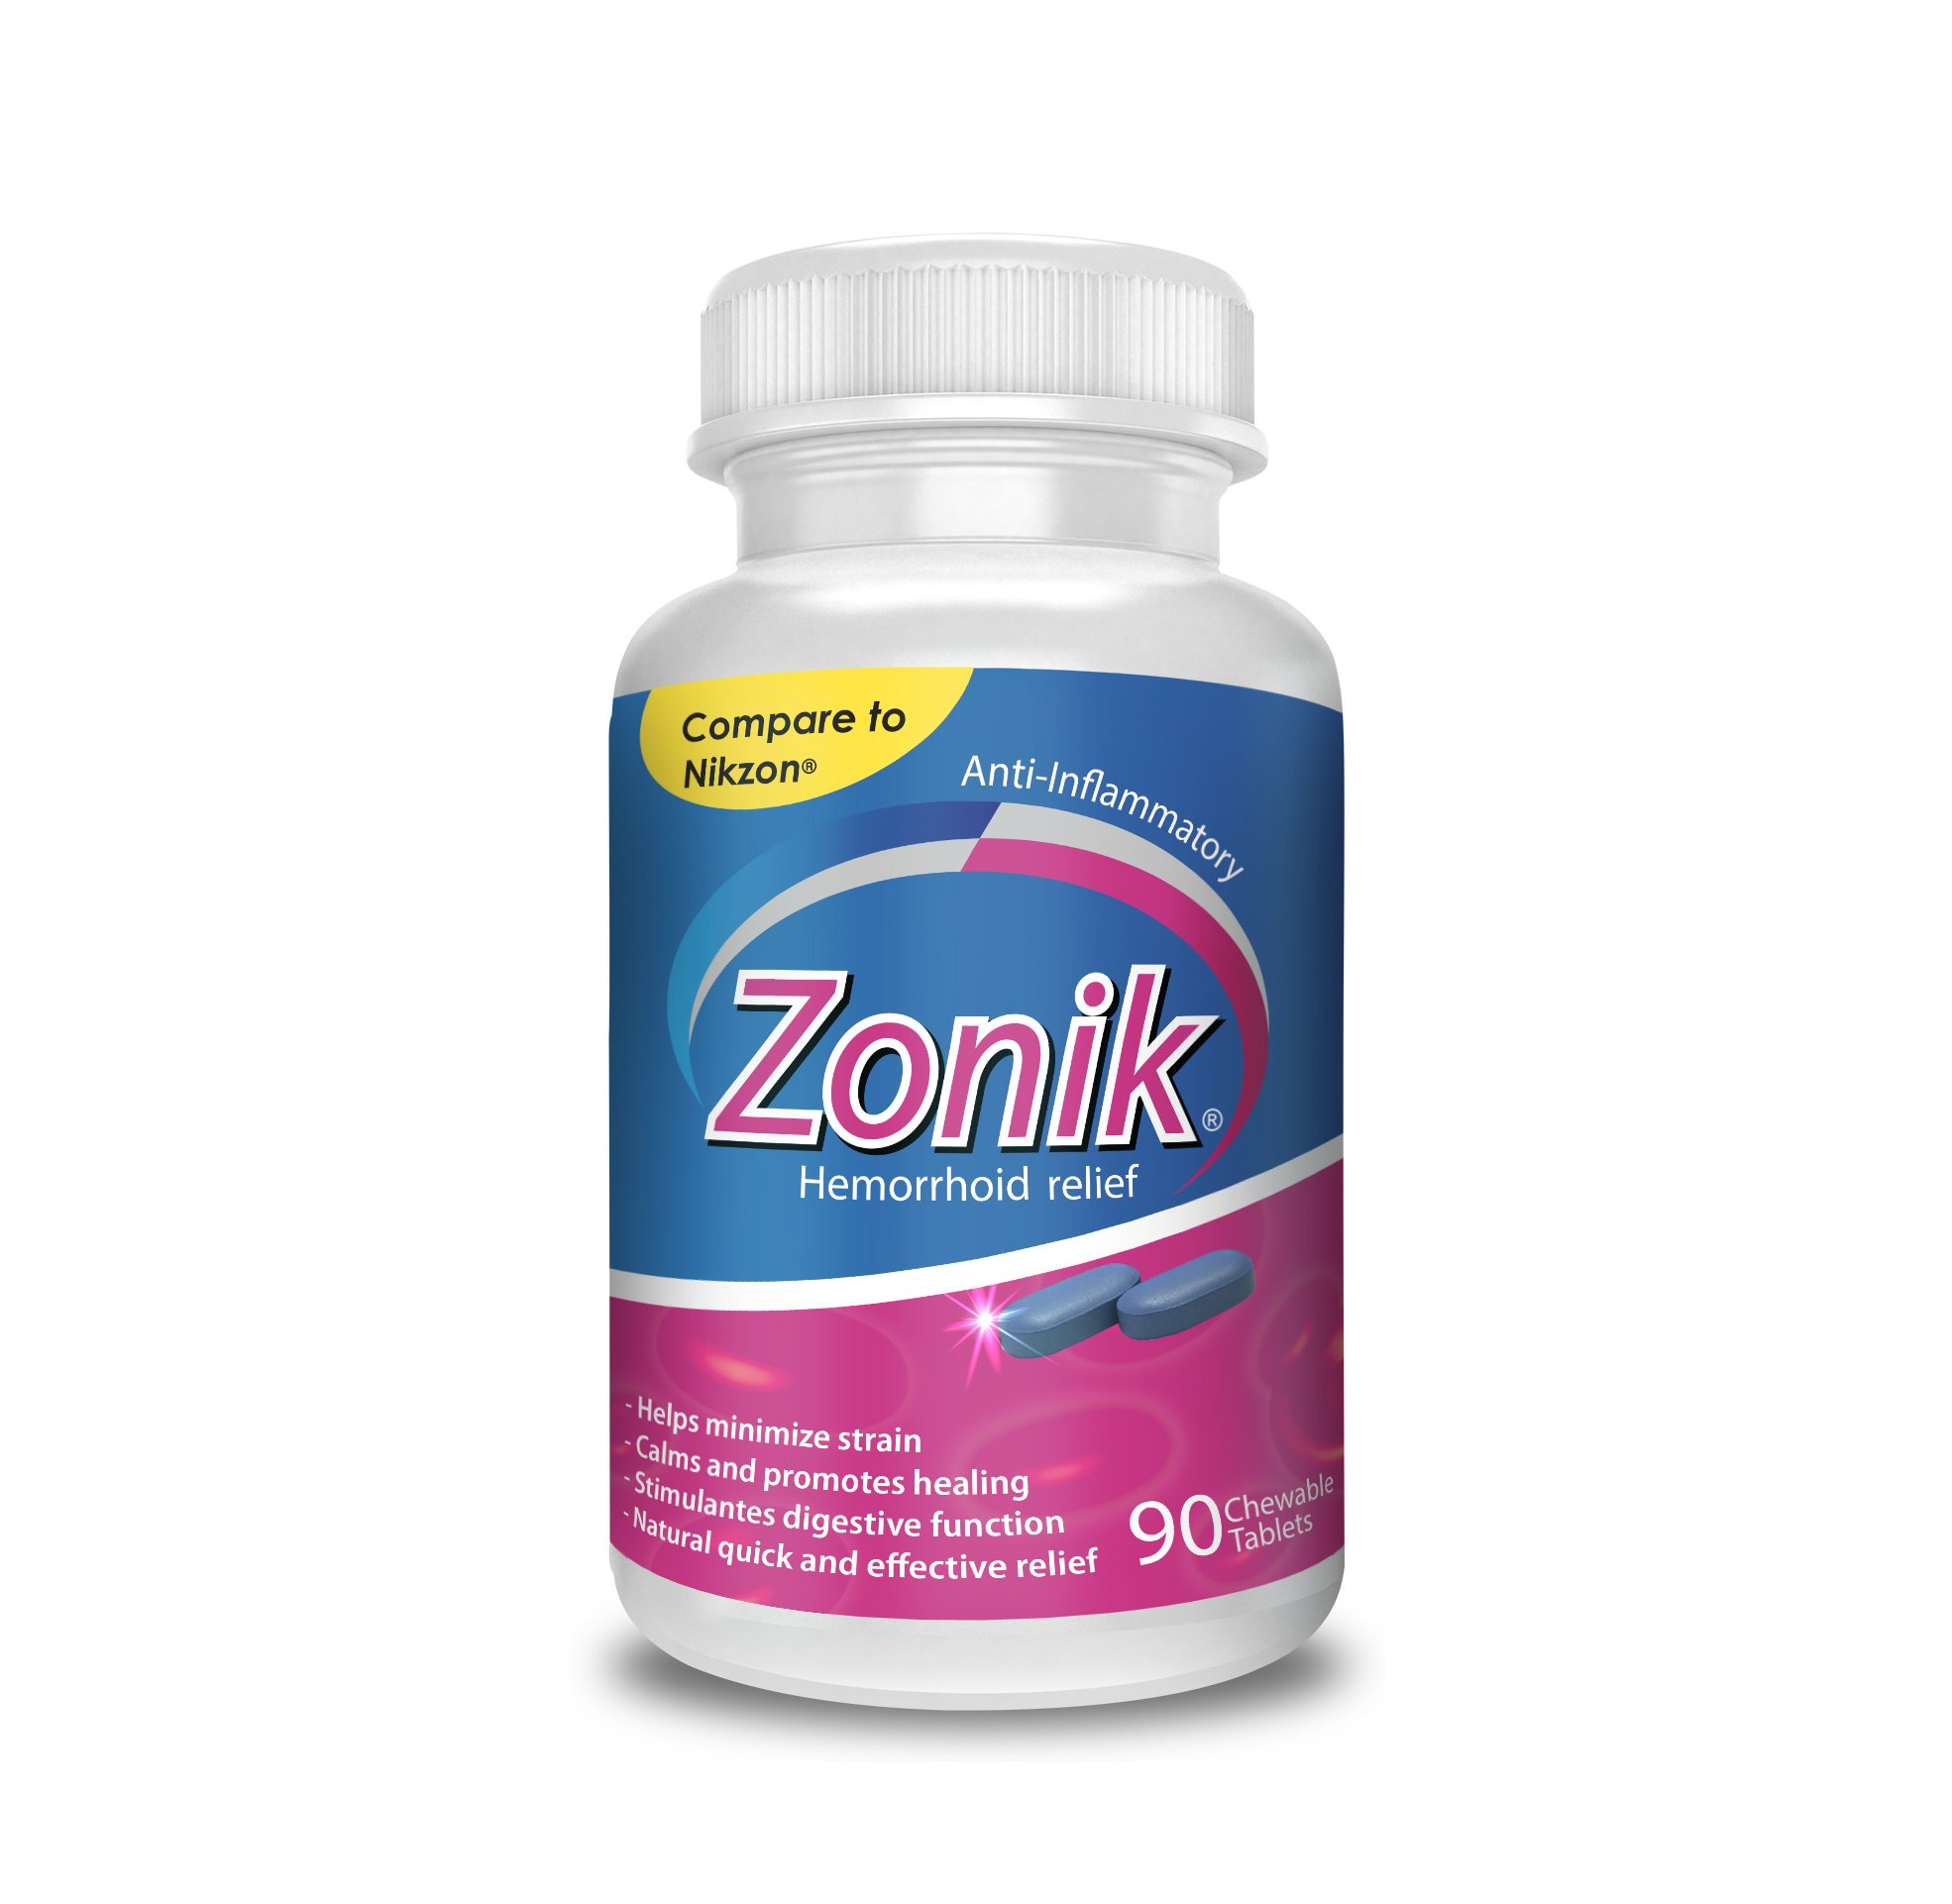 Zonik Hemorrhoid Relief - Compare to Nikzon chewable tablets